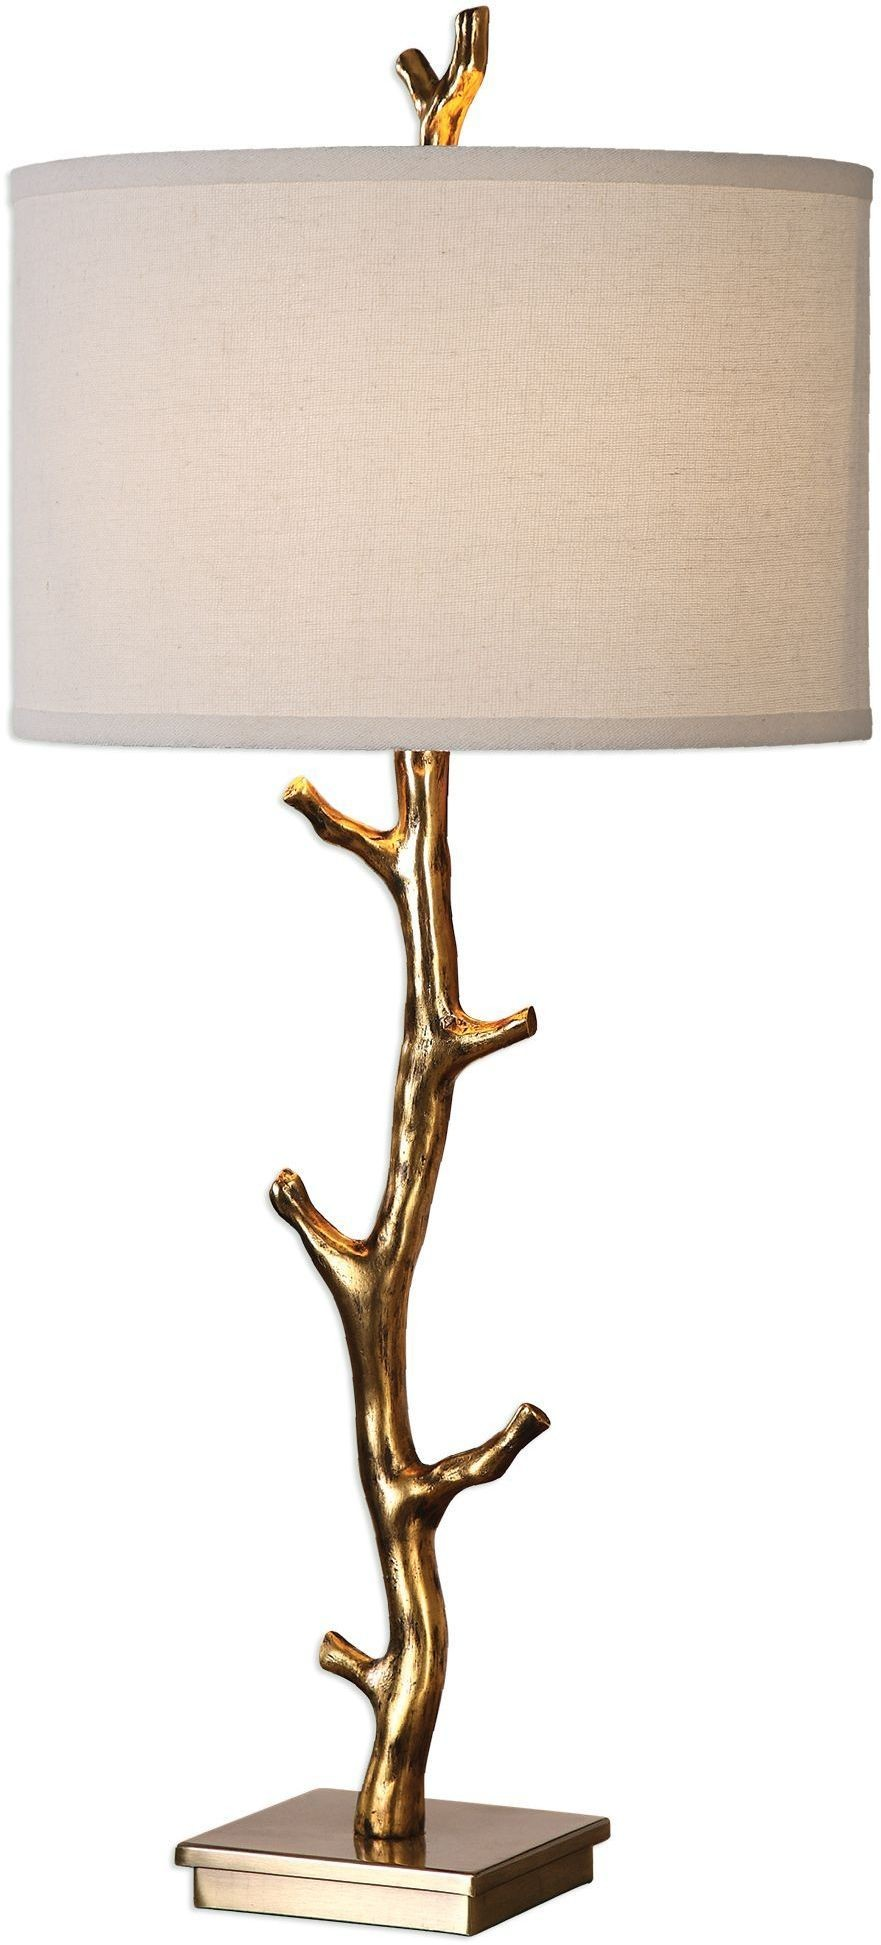 Javor Gold Tree Branch Table Lamp From Uttermost Coleman Furniture